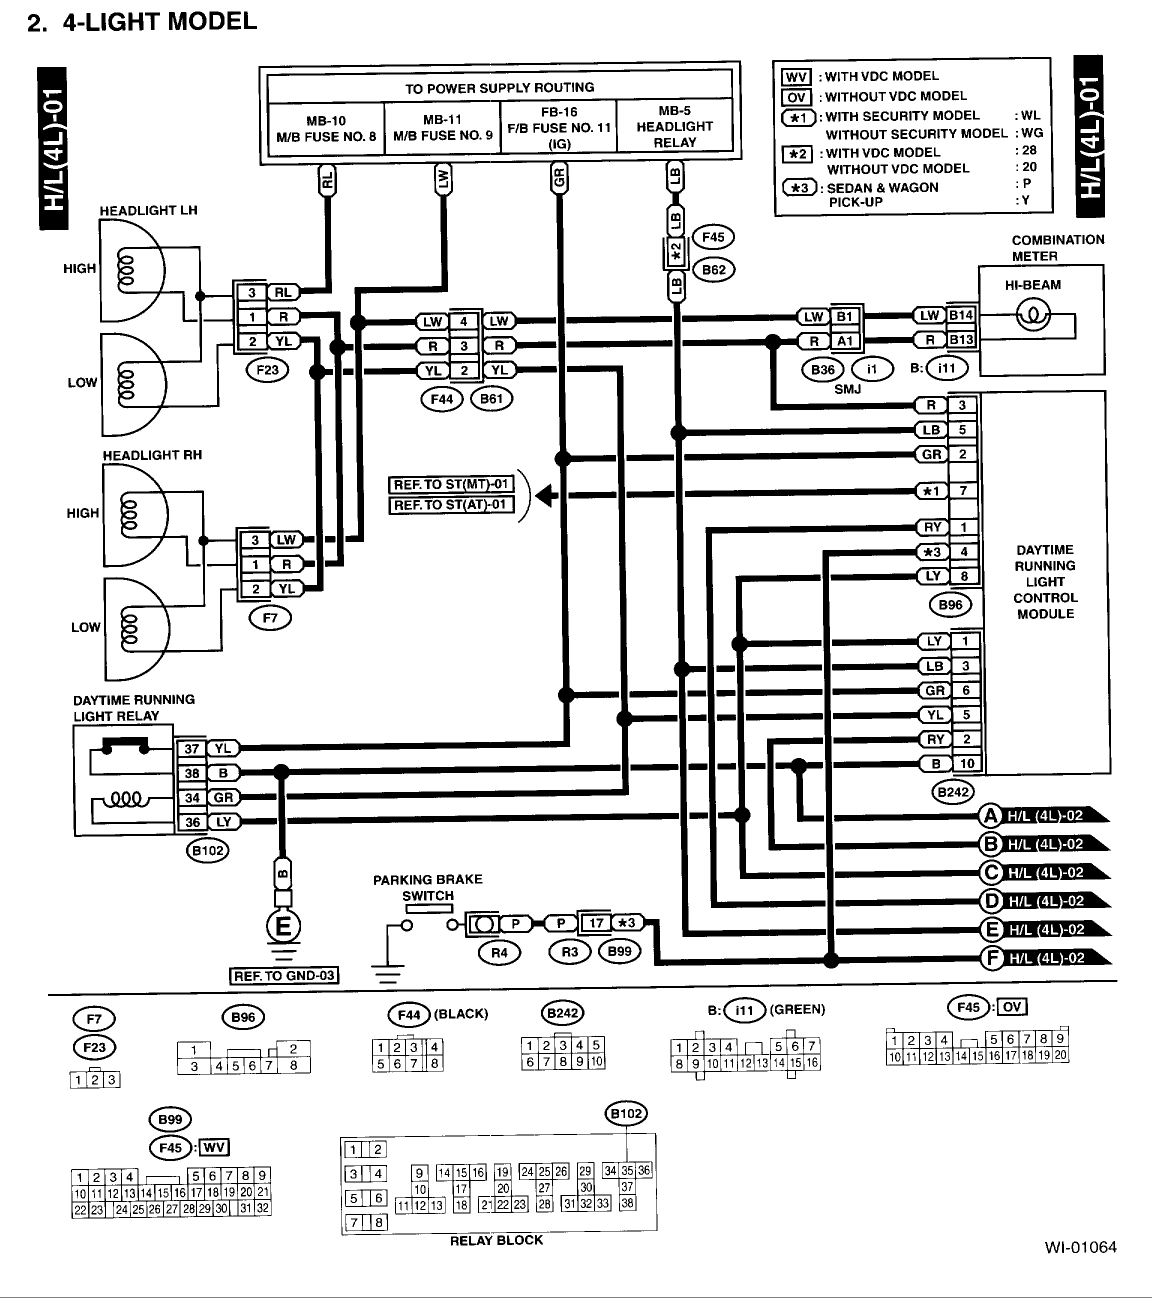 hight resolution of 02 subaru wrx wiring diagram wiring diagram datasource 2002 subaru impreza headlight wiring diagram